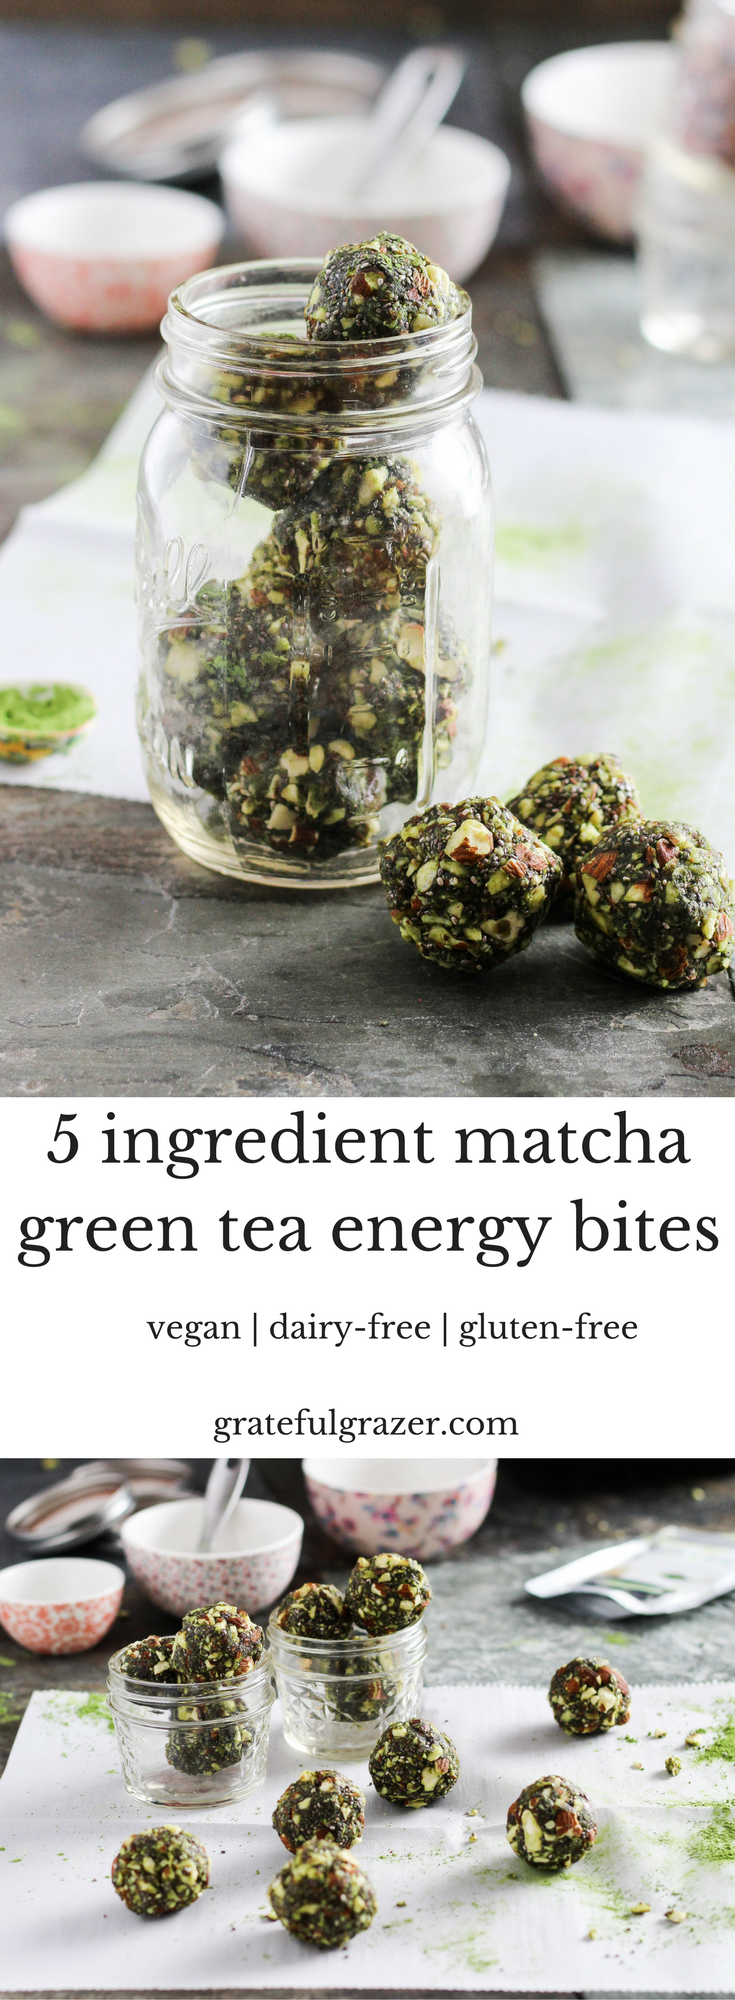 Matcha Energy Balls Recipe | How Make 5 Ingredient Green Tea Bites